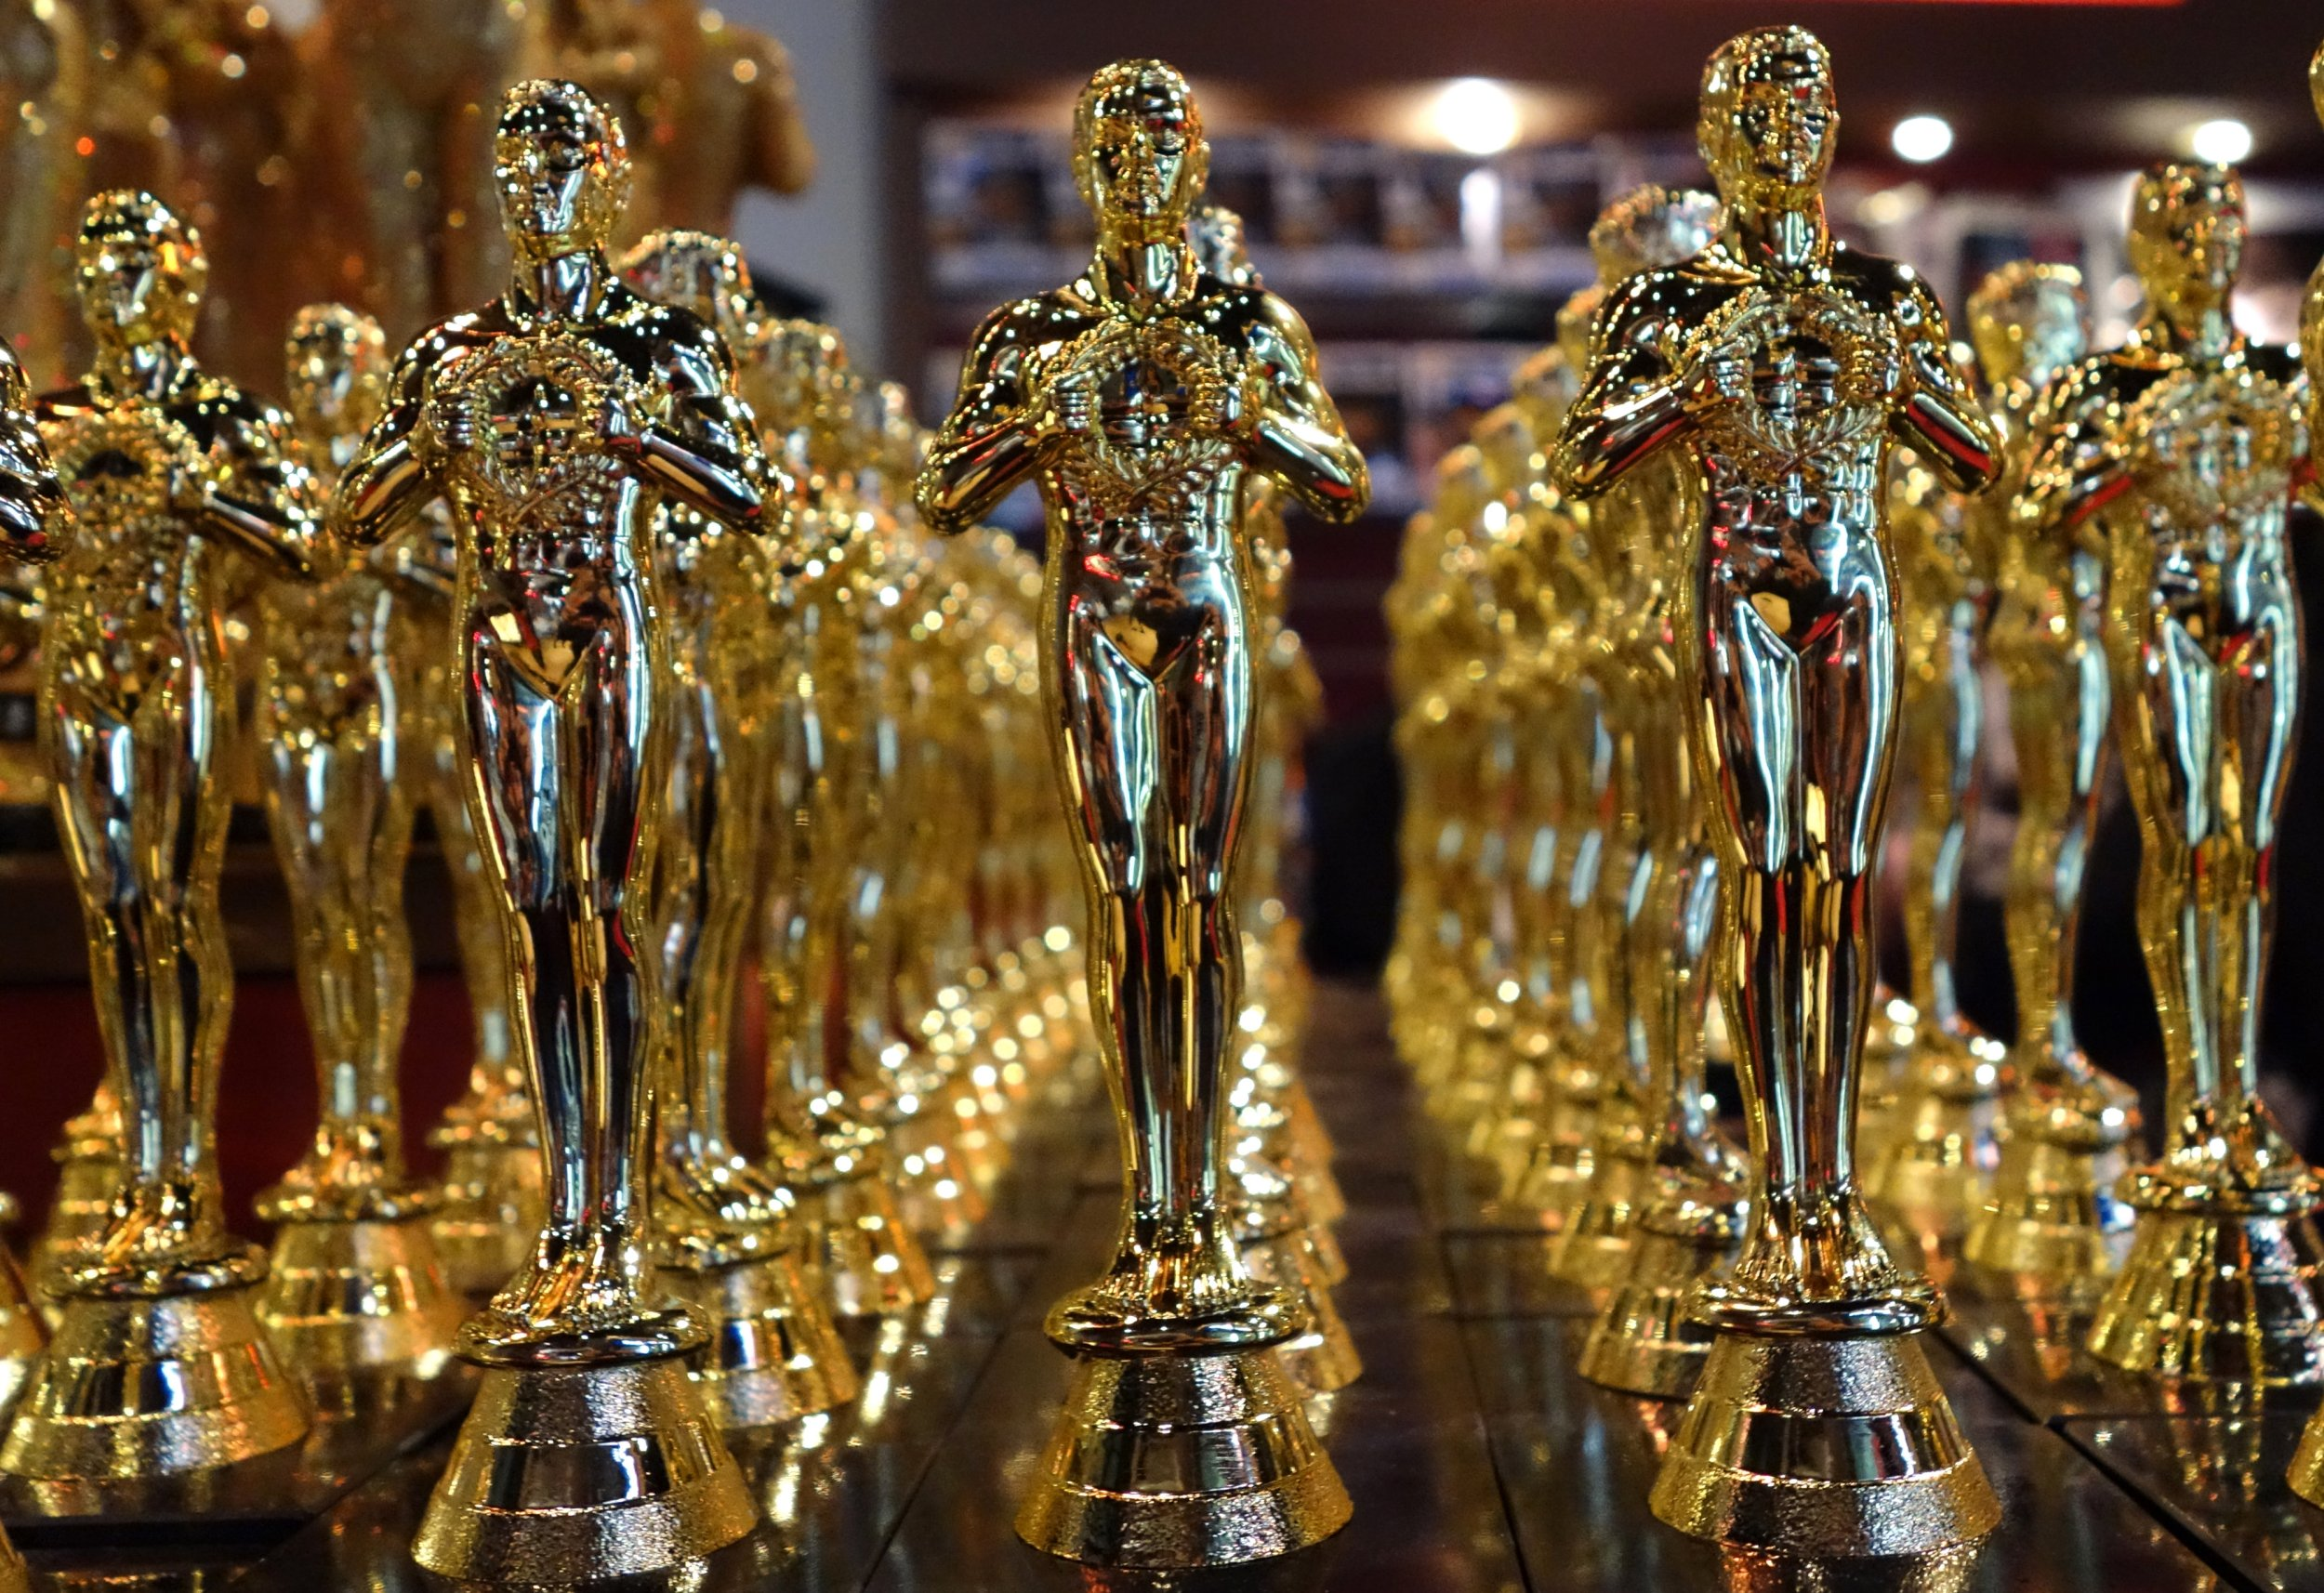 oscars (Getty) Oscar statuettes are lined up in a local souvenir shop 10 days prior to this year's upcoming Oscars, the 85th Academy Awards, in Hollywood, California, on February 14, 2013. The ceremony is scheduled for February 24, 2013. AFP PHOTO / JOE KLAMAR (Photo credit should read JOE KLAMAR/AFP/Getty Images)